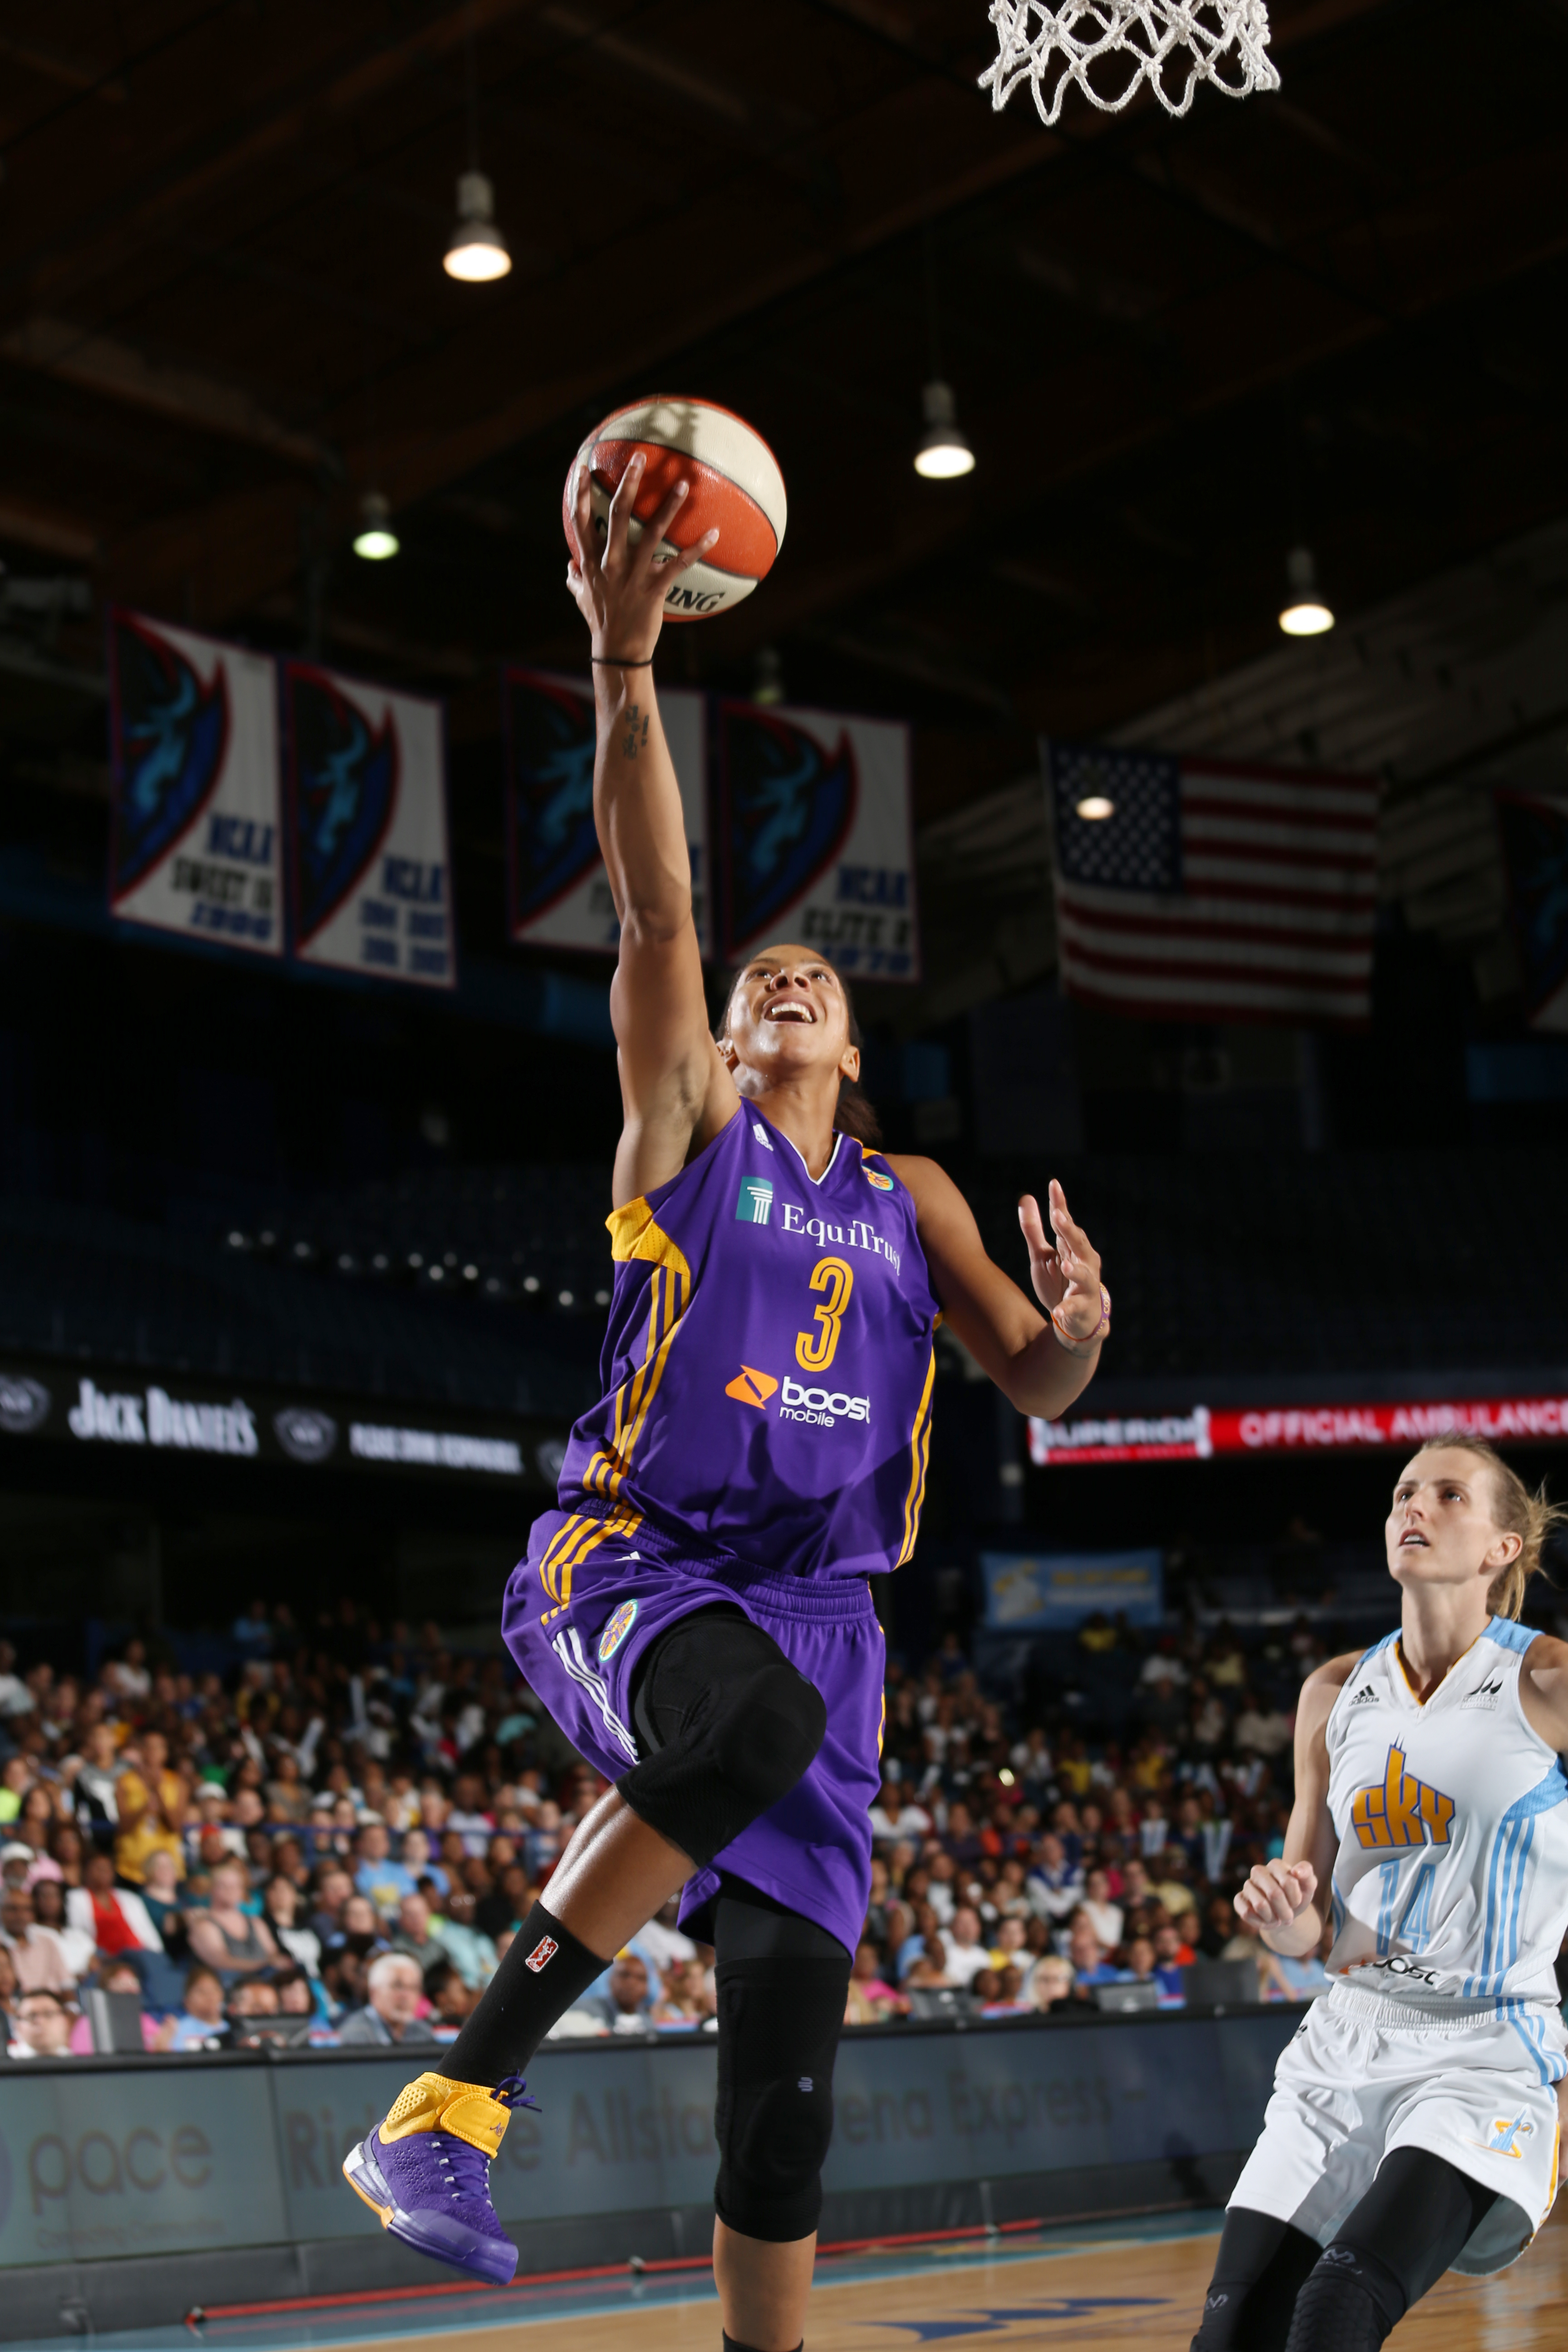 ROSEMONT, IL - JULY 31: Candace Parker #3 of the Los Angeles Sparks goes up for a shot against the Chicago Sky on July 31, 2015 at Allstate Arena in Rosemont, Illinois. (Photo by Gary Dineen/NBAE via Getty Images)